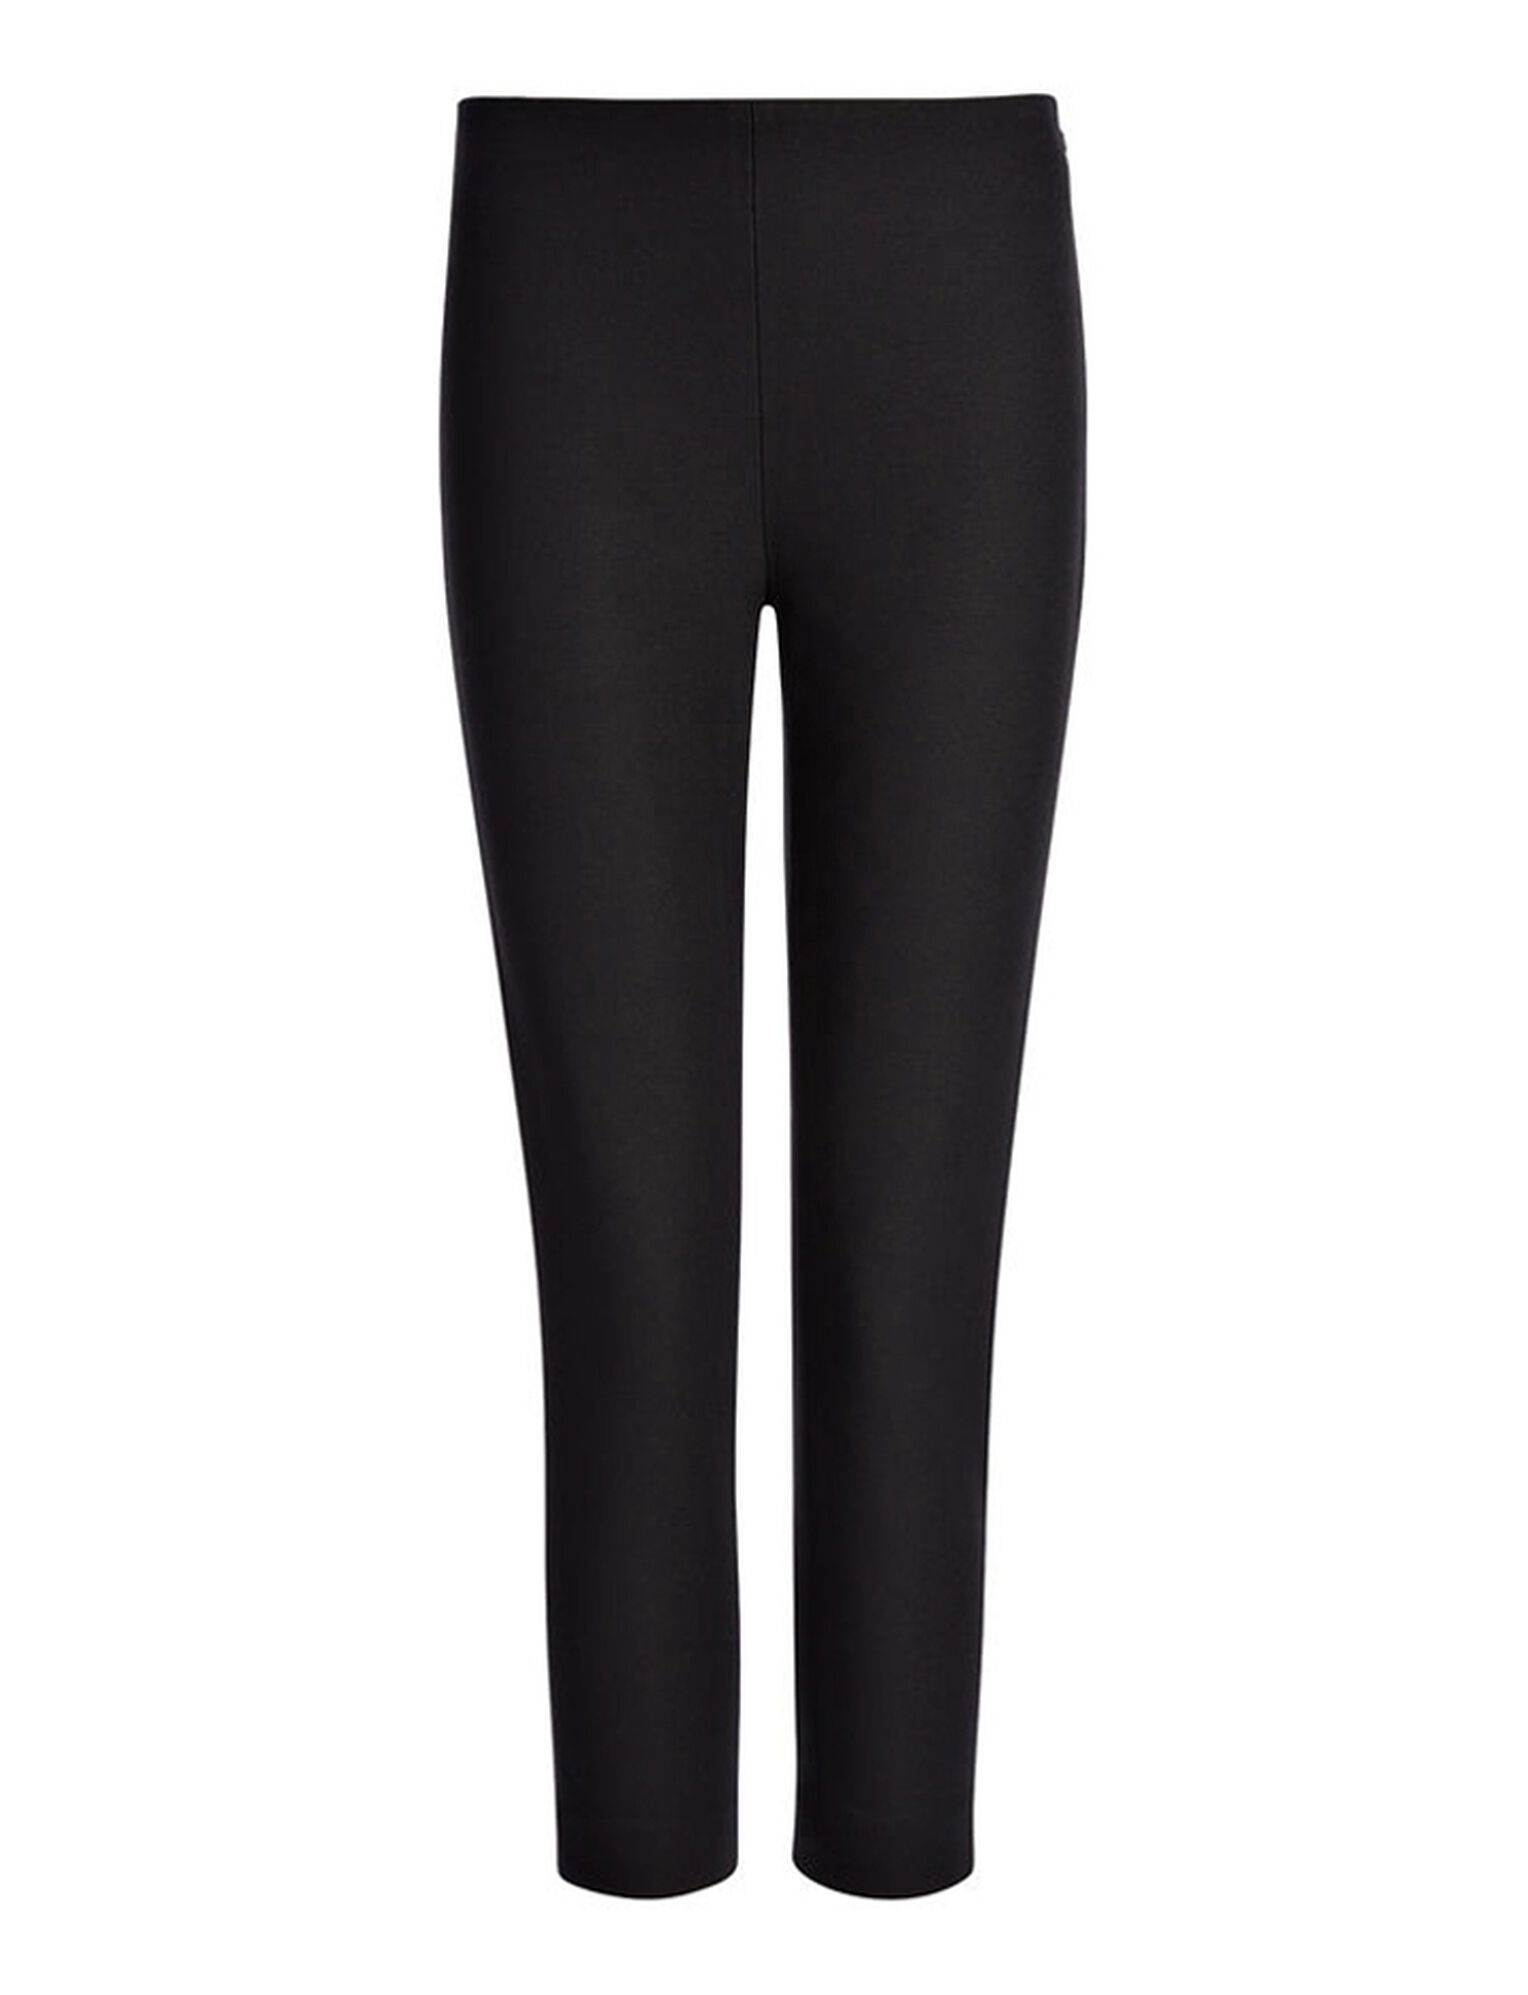 Joseph, Gabardine Stretch New Tony Cropped Trouser, in BLACK